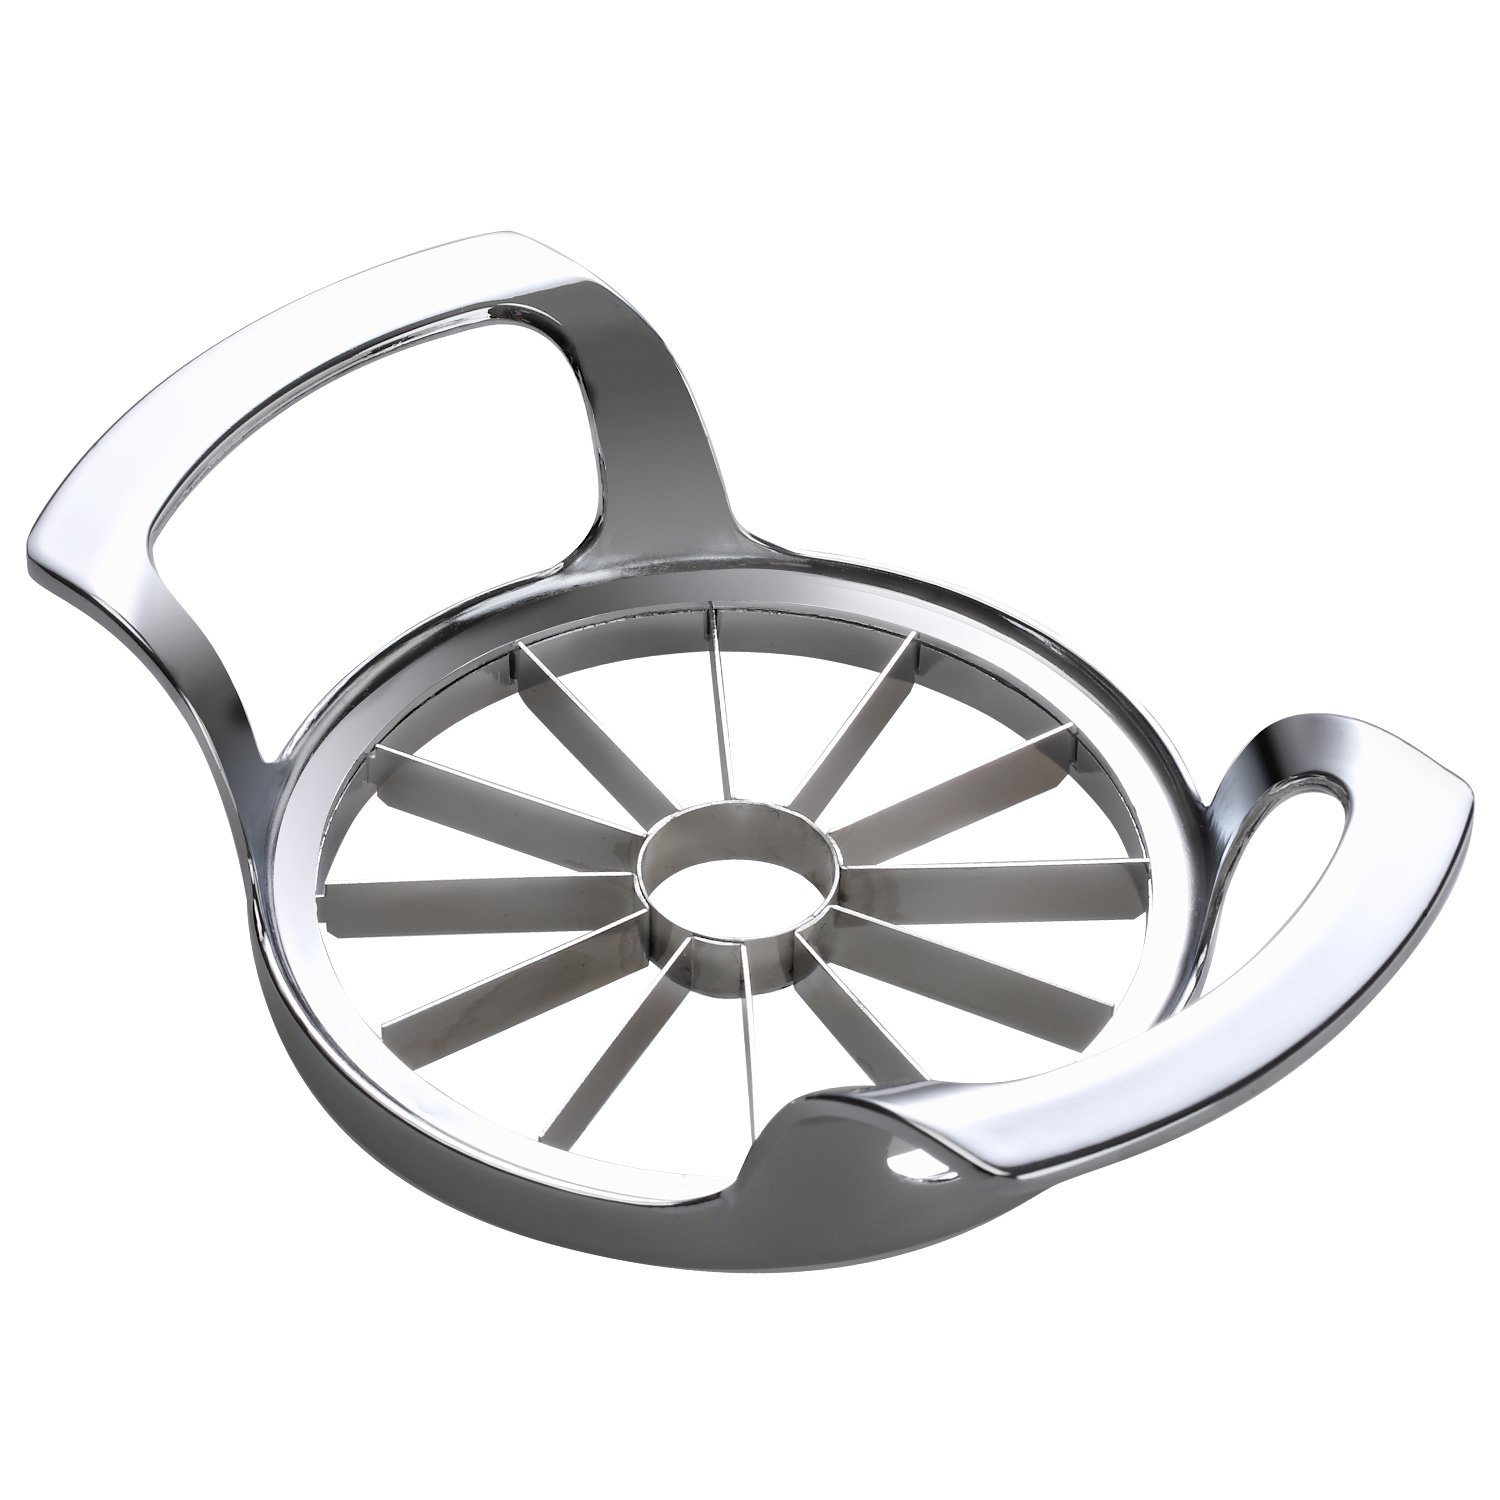 SAVORLIVING Apple Slicer Upgraded Version 12-Blade Extra Large Apple Corer, Stainless Steel Ultra-Sharp Apple Cutter, Pitter, Divider for Up to 4 Inches Apples (Update) by SAVORLIVING